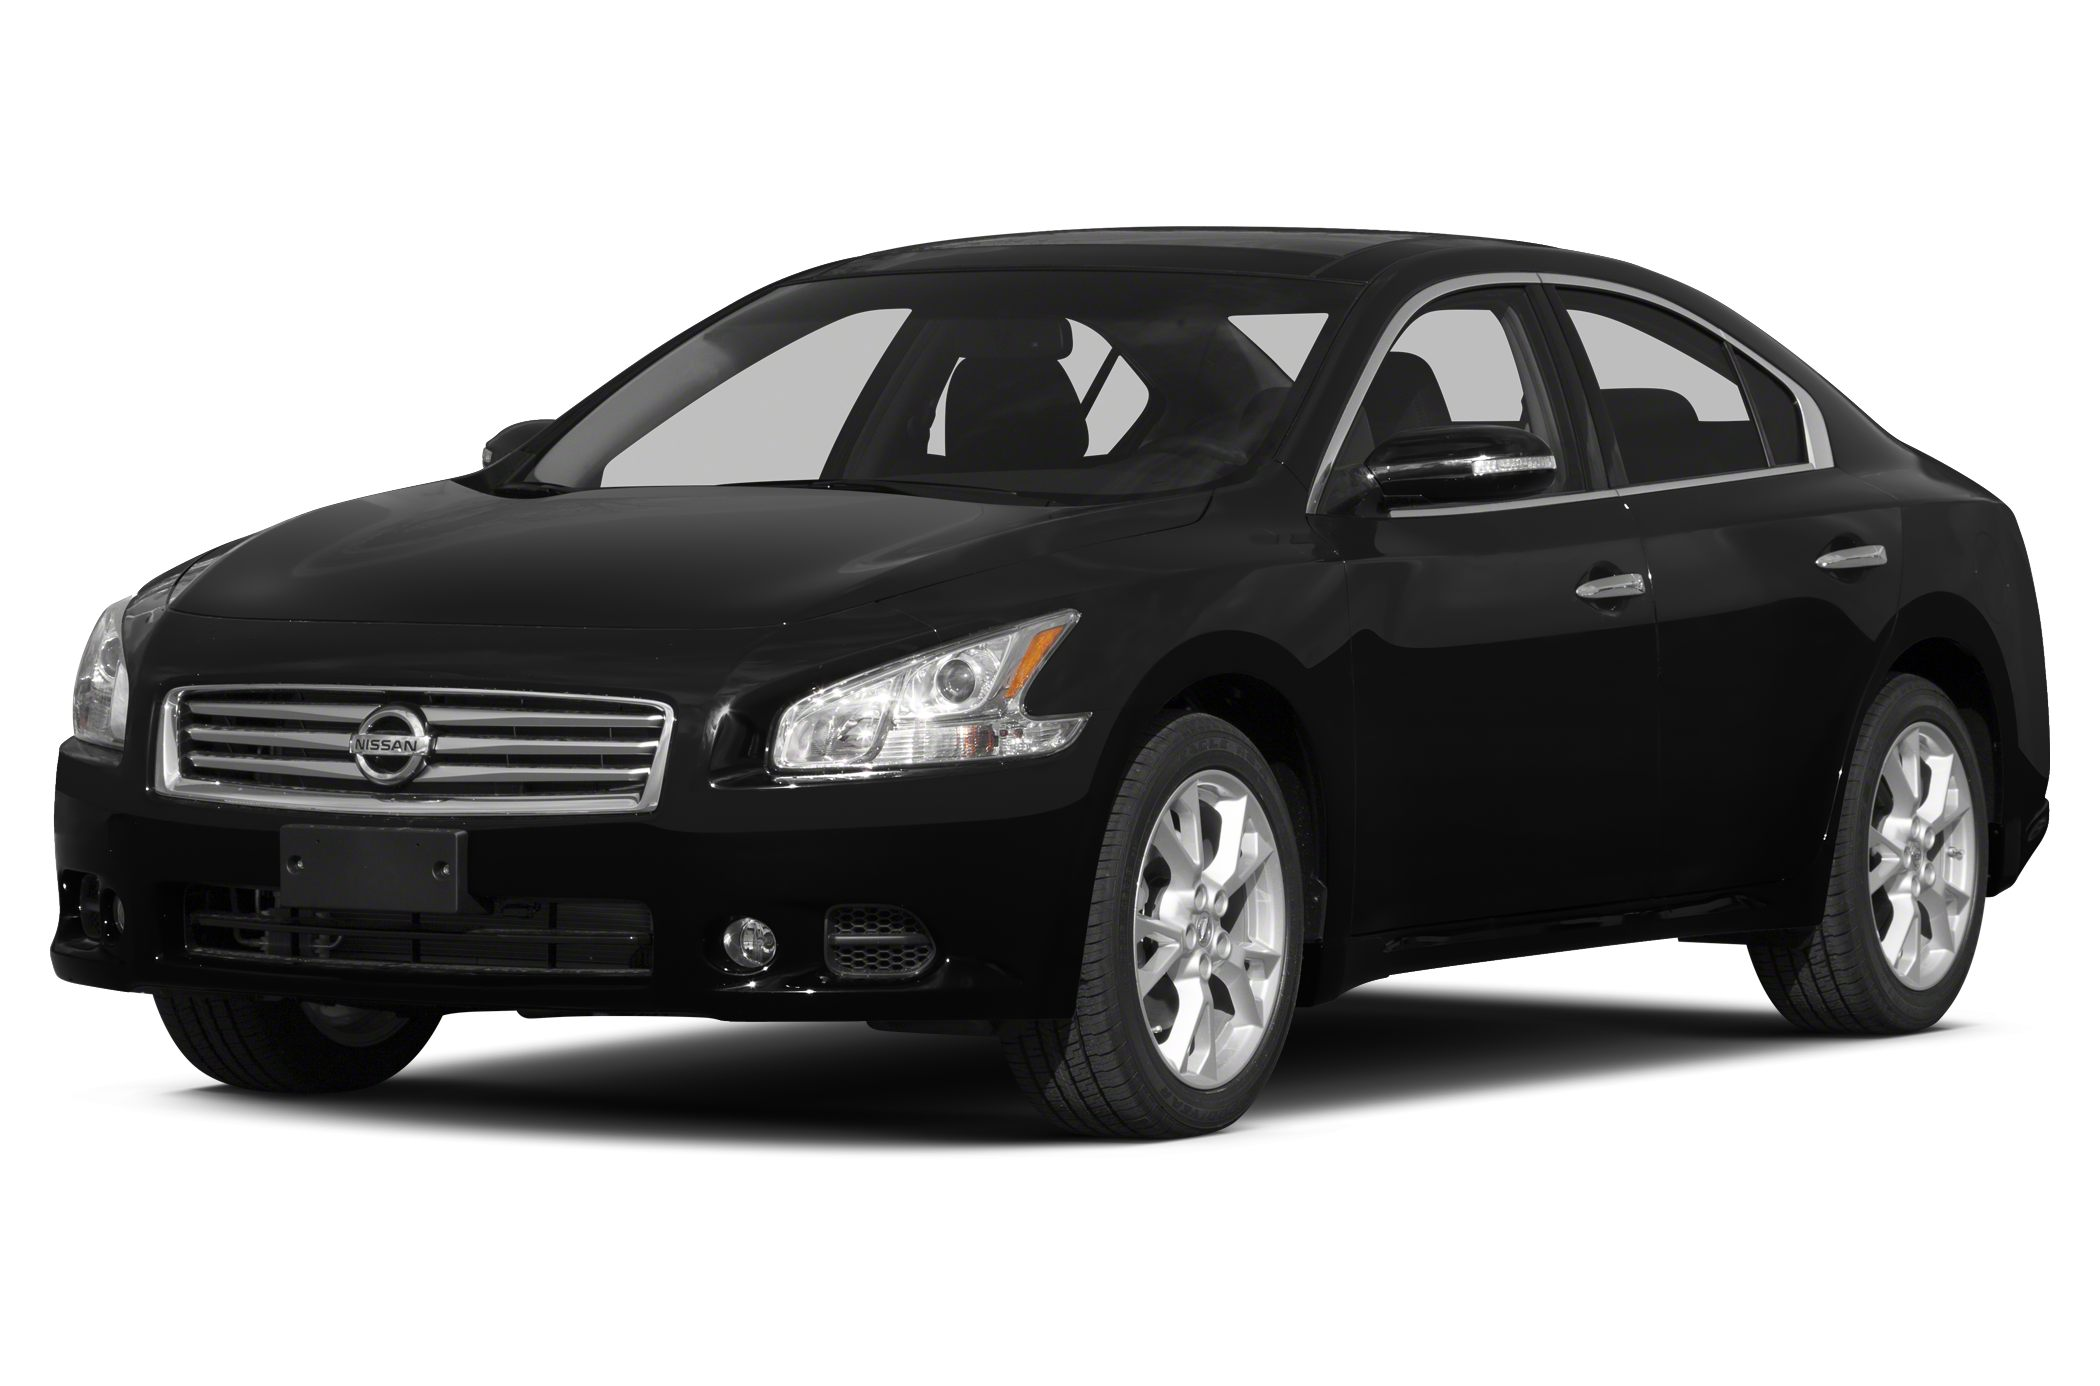 2014 Nissan Maxima 35 S Vehicle Detailed Recent Oil Change and Passed Dealer Inspection Looks